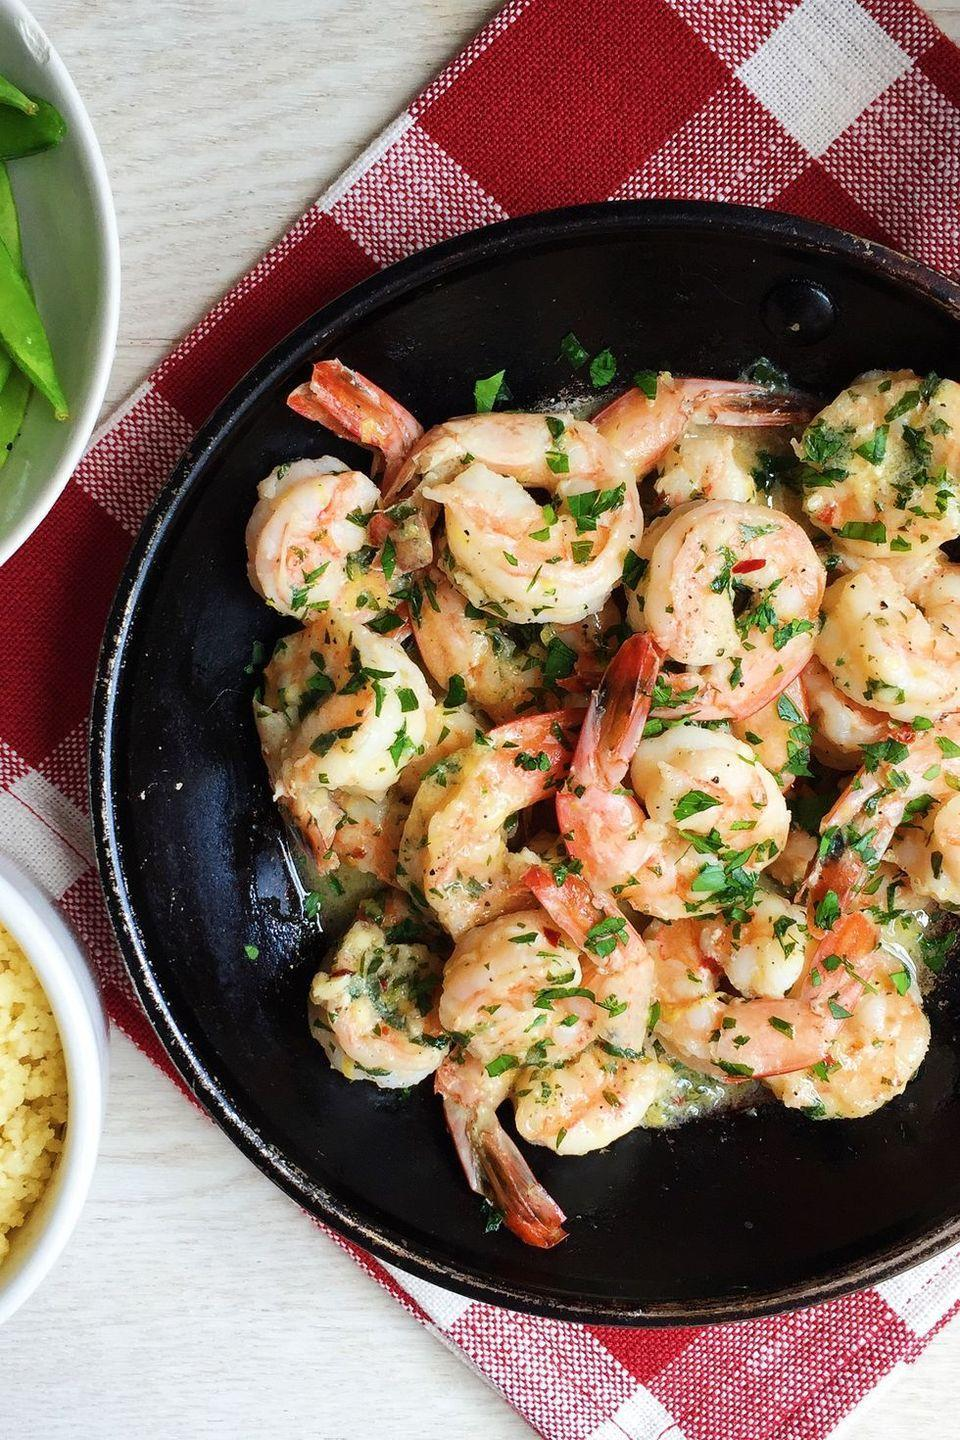 """<p>All shrimp needs are a little lemon and herbs.<br><br>Get the recipe from <a href=""""https://www.delish.com/cooking/recipe-ideas/recipes/a43706/sauteed-shrimp-lemon-parsley-spread-couscous-recipe/"""" rel=""""nofollow noopener"""" target=""""_blank"""" data-ylk=""""slk:Delish"""" class=""""link rapid-noclick-resp"""">Delish</a>.</p>"""